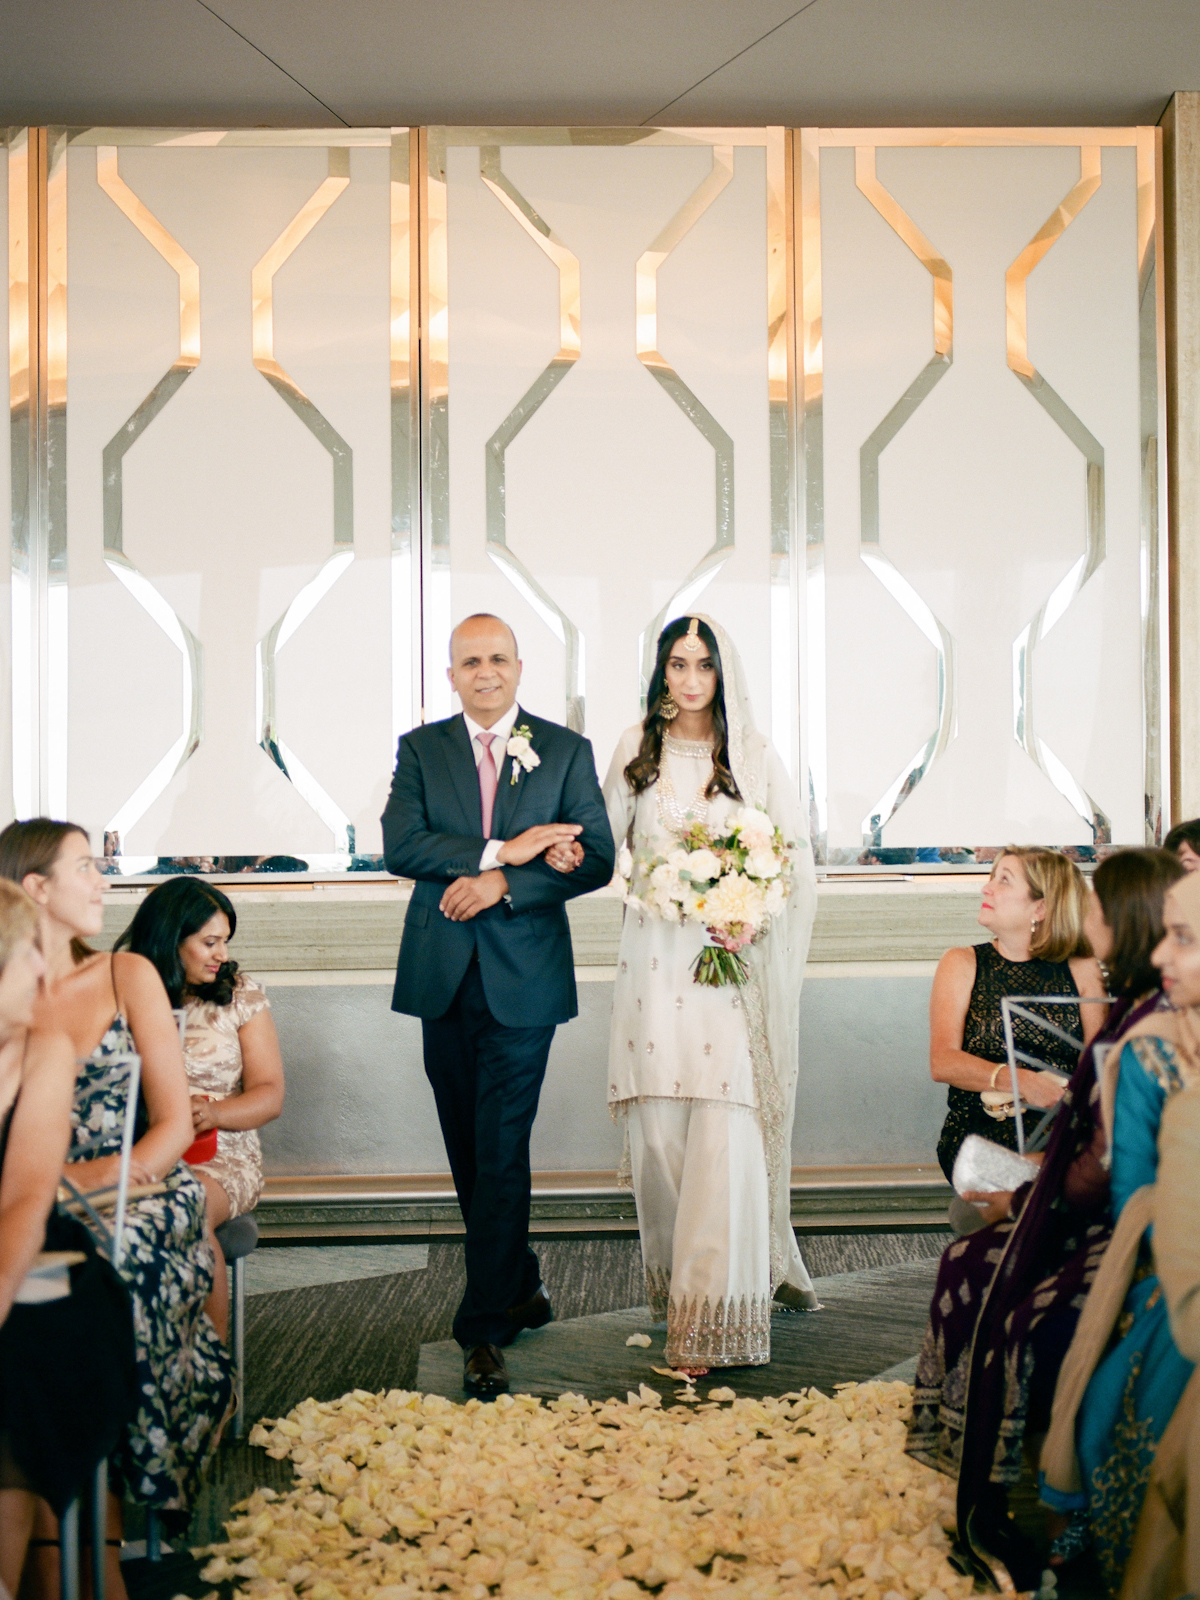 South asian bride walks down the aisle at Rainbow Room wedding